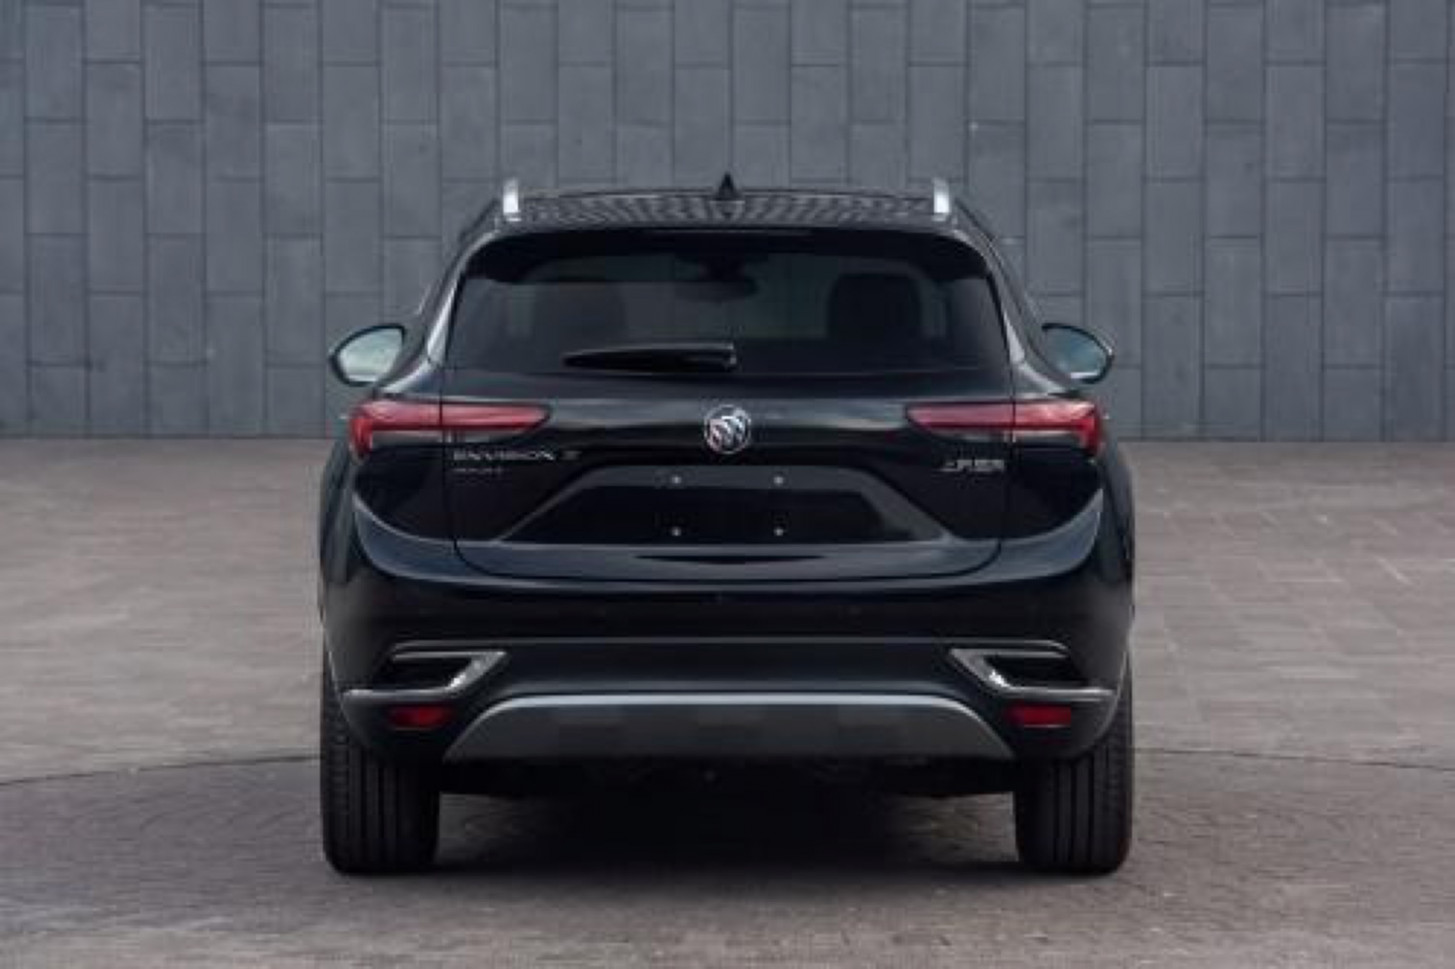 New Model and Performance 2022 Buick Envision